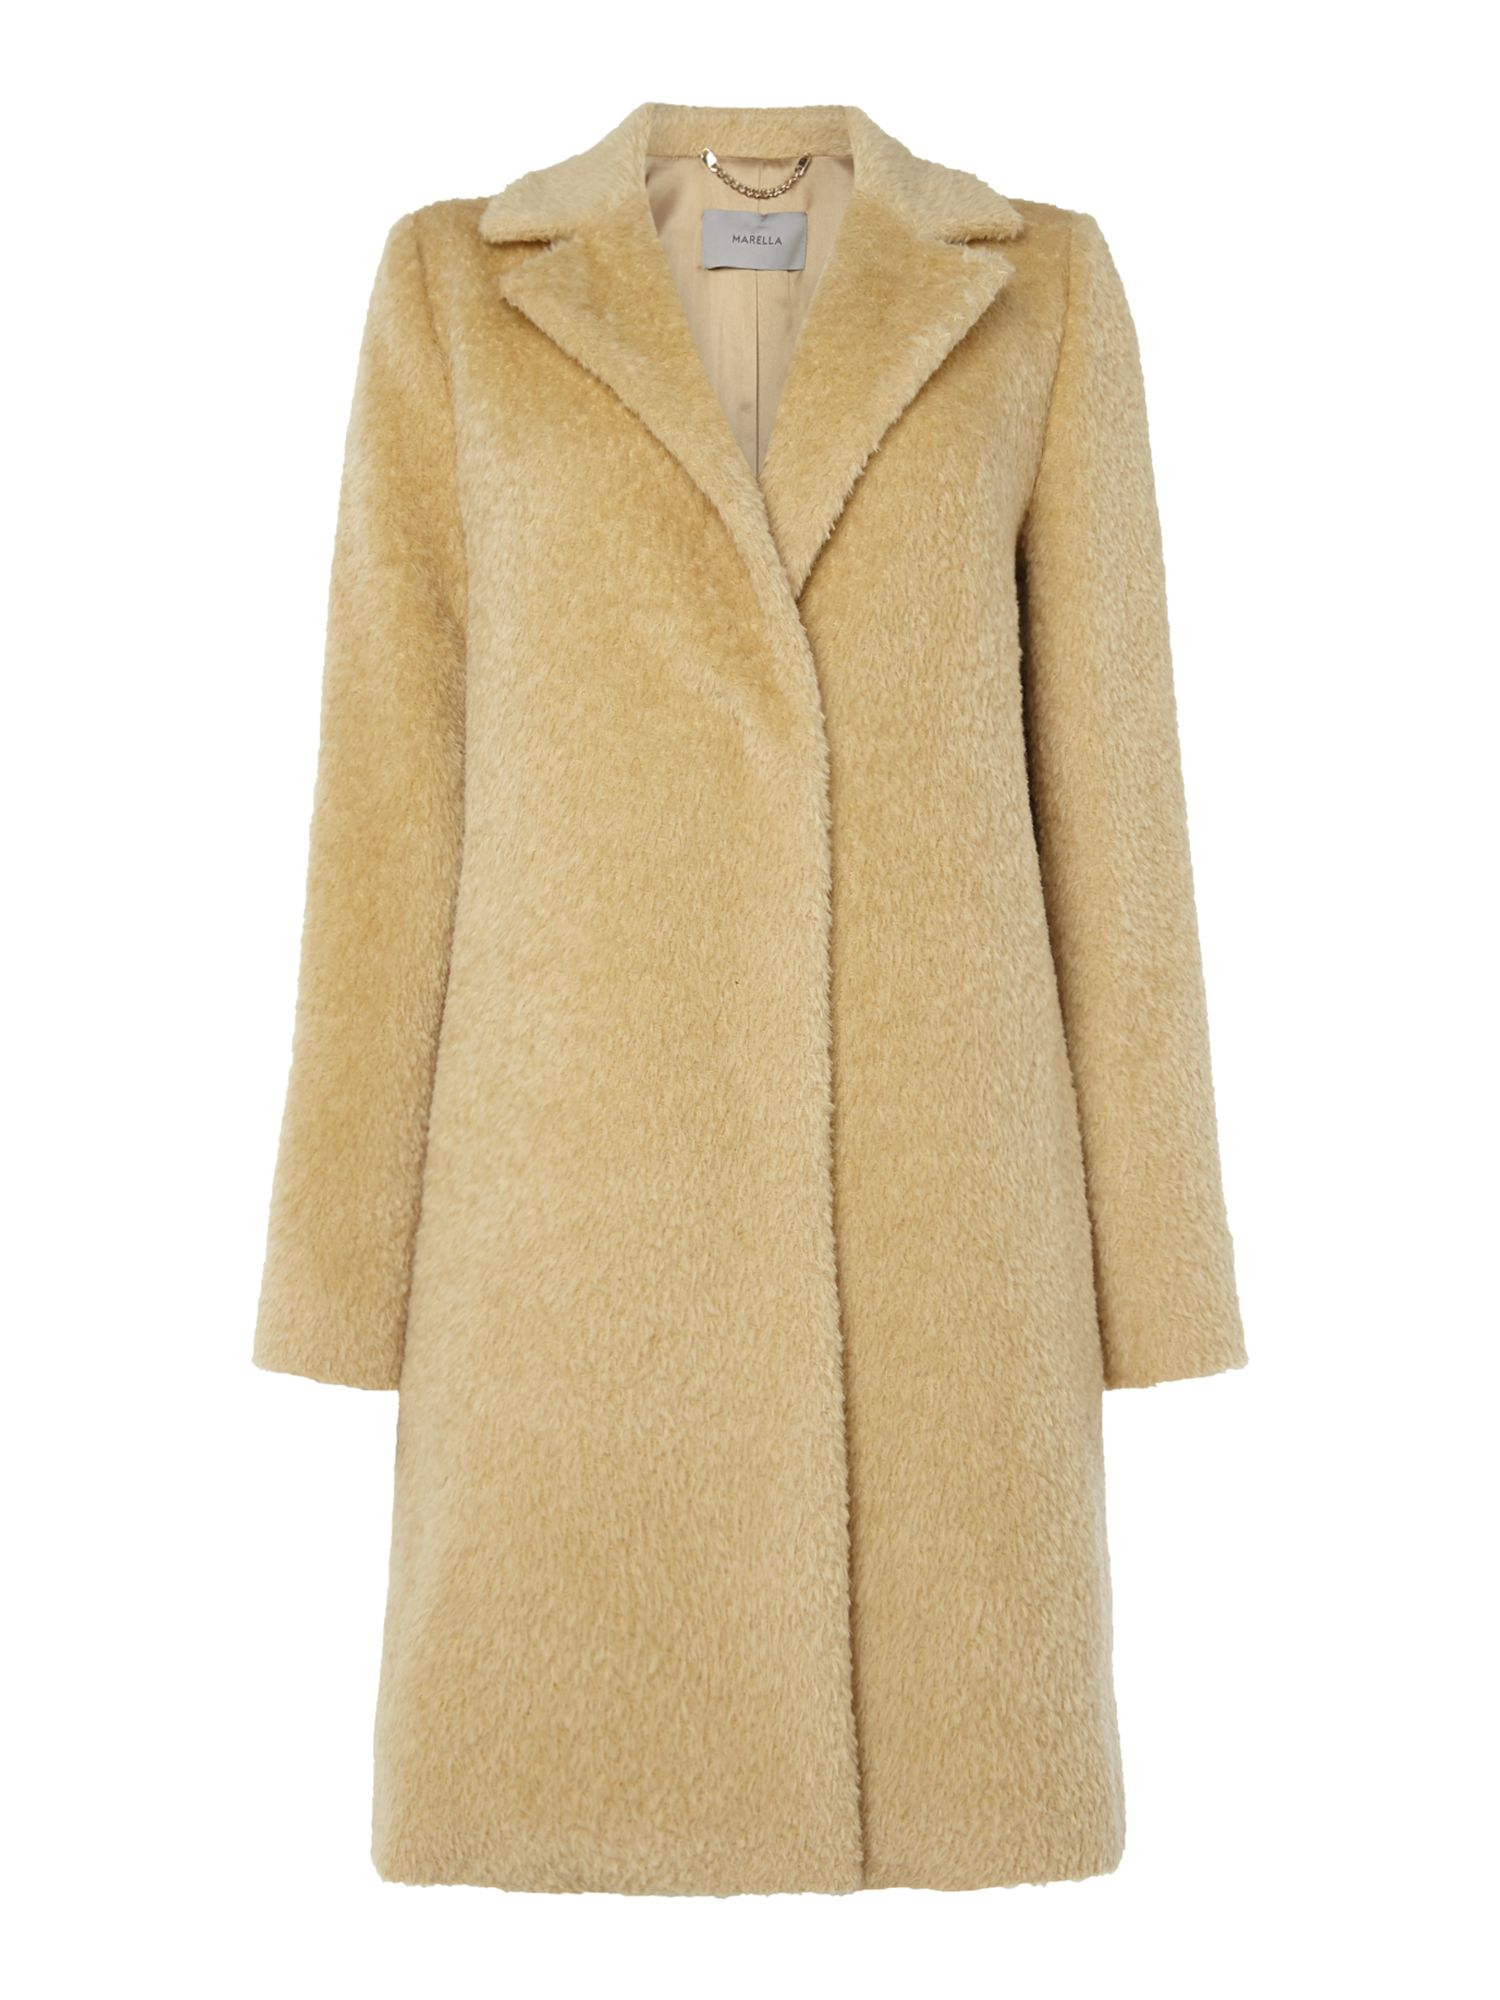 Marella Berma yellow wool coat, Yellow